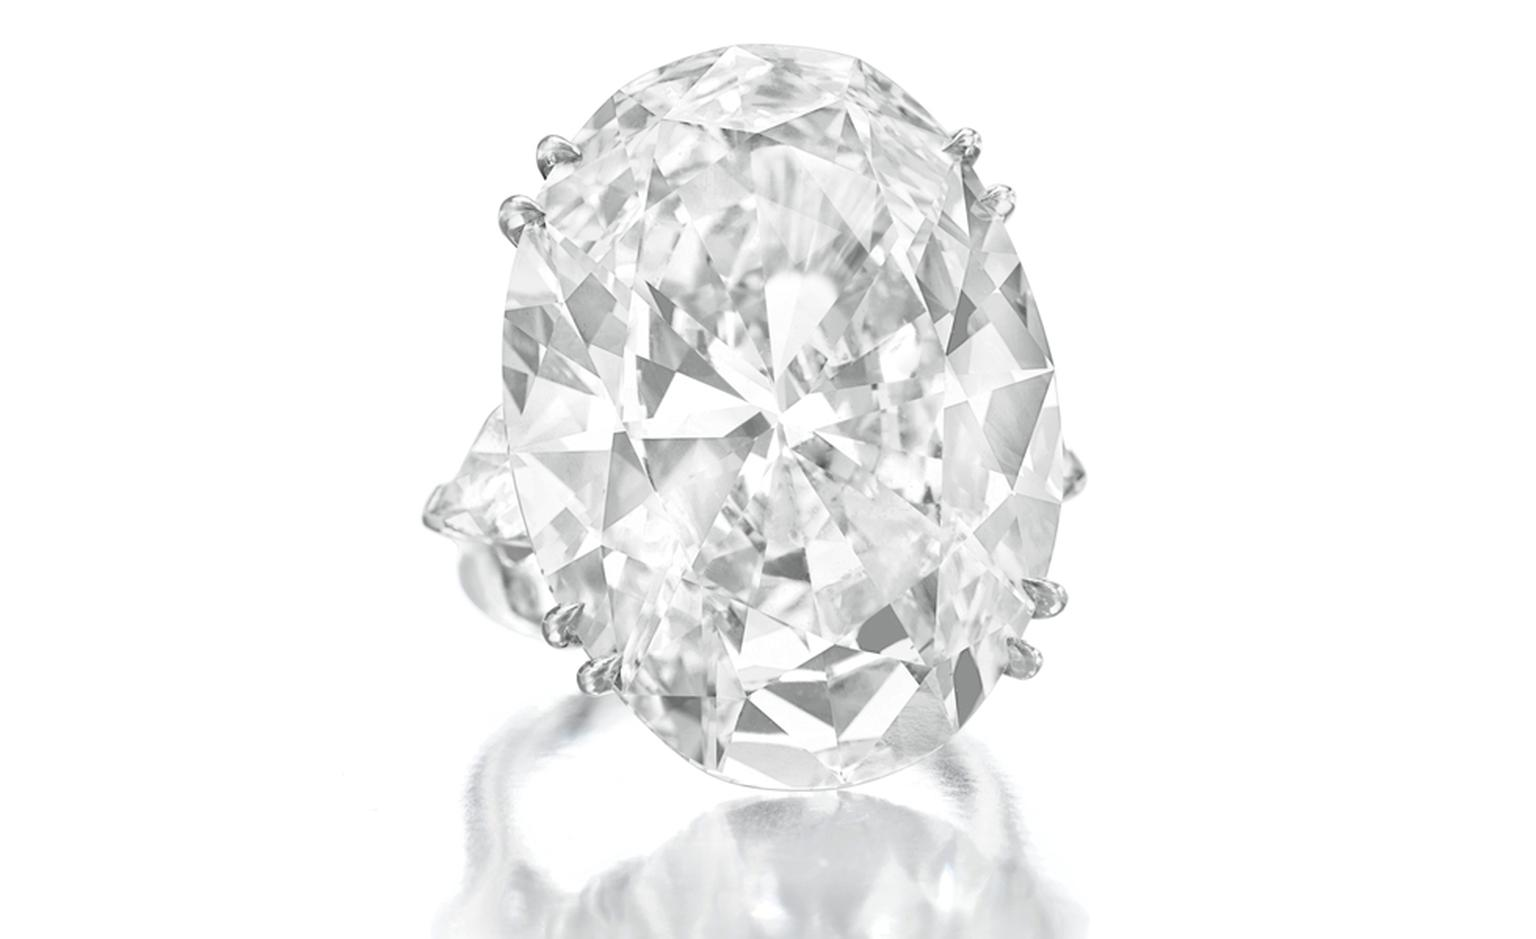 Lot 125. An impressive diamond ring. Estimate 2,500,000 - 3,500,000 U.S. dollars. SOLD FOR $4,226,500